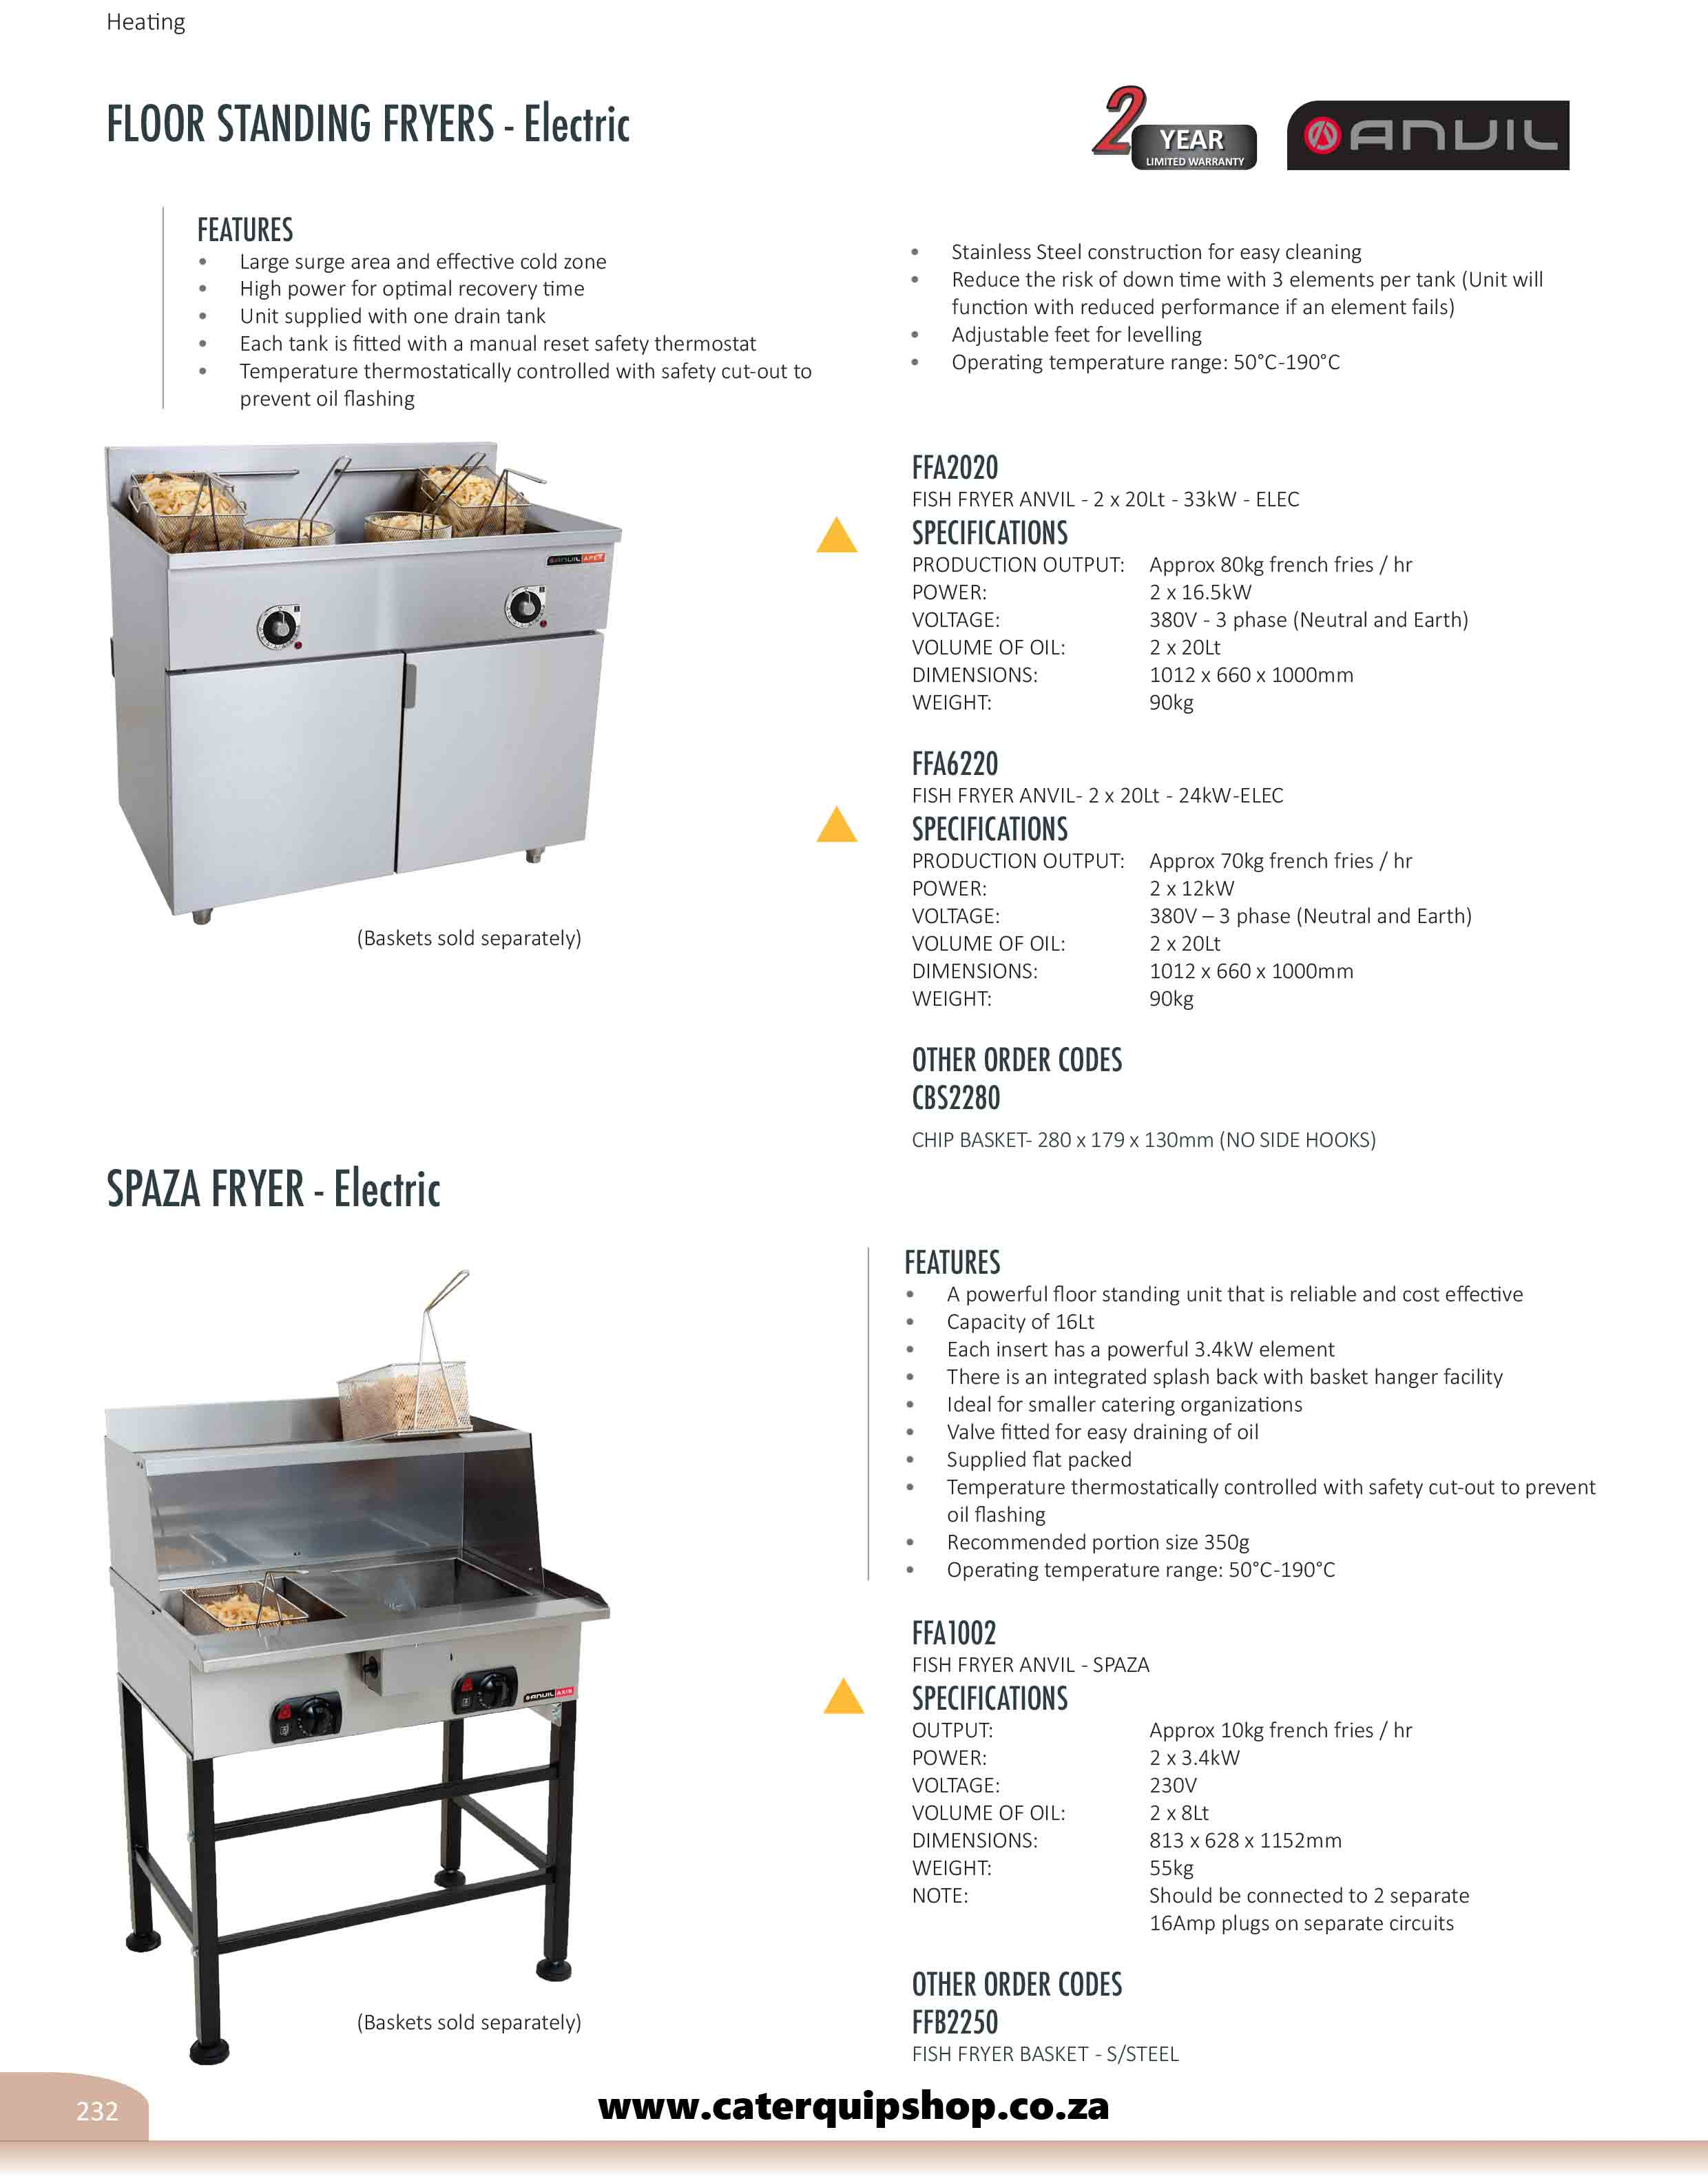 All In One Catering Equipment Home Page Electric 6 24kw Open Radiant Elements 2 1 Gn Oven With 4 Rack 291 Stove 258 259 Stoves 234 235 Tea Pot 288 Tilting Pan 262 Toasters 245 248 Urns 286 290 Vacuum Flask 289 Waffle Baker 249